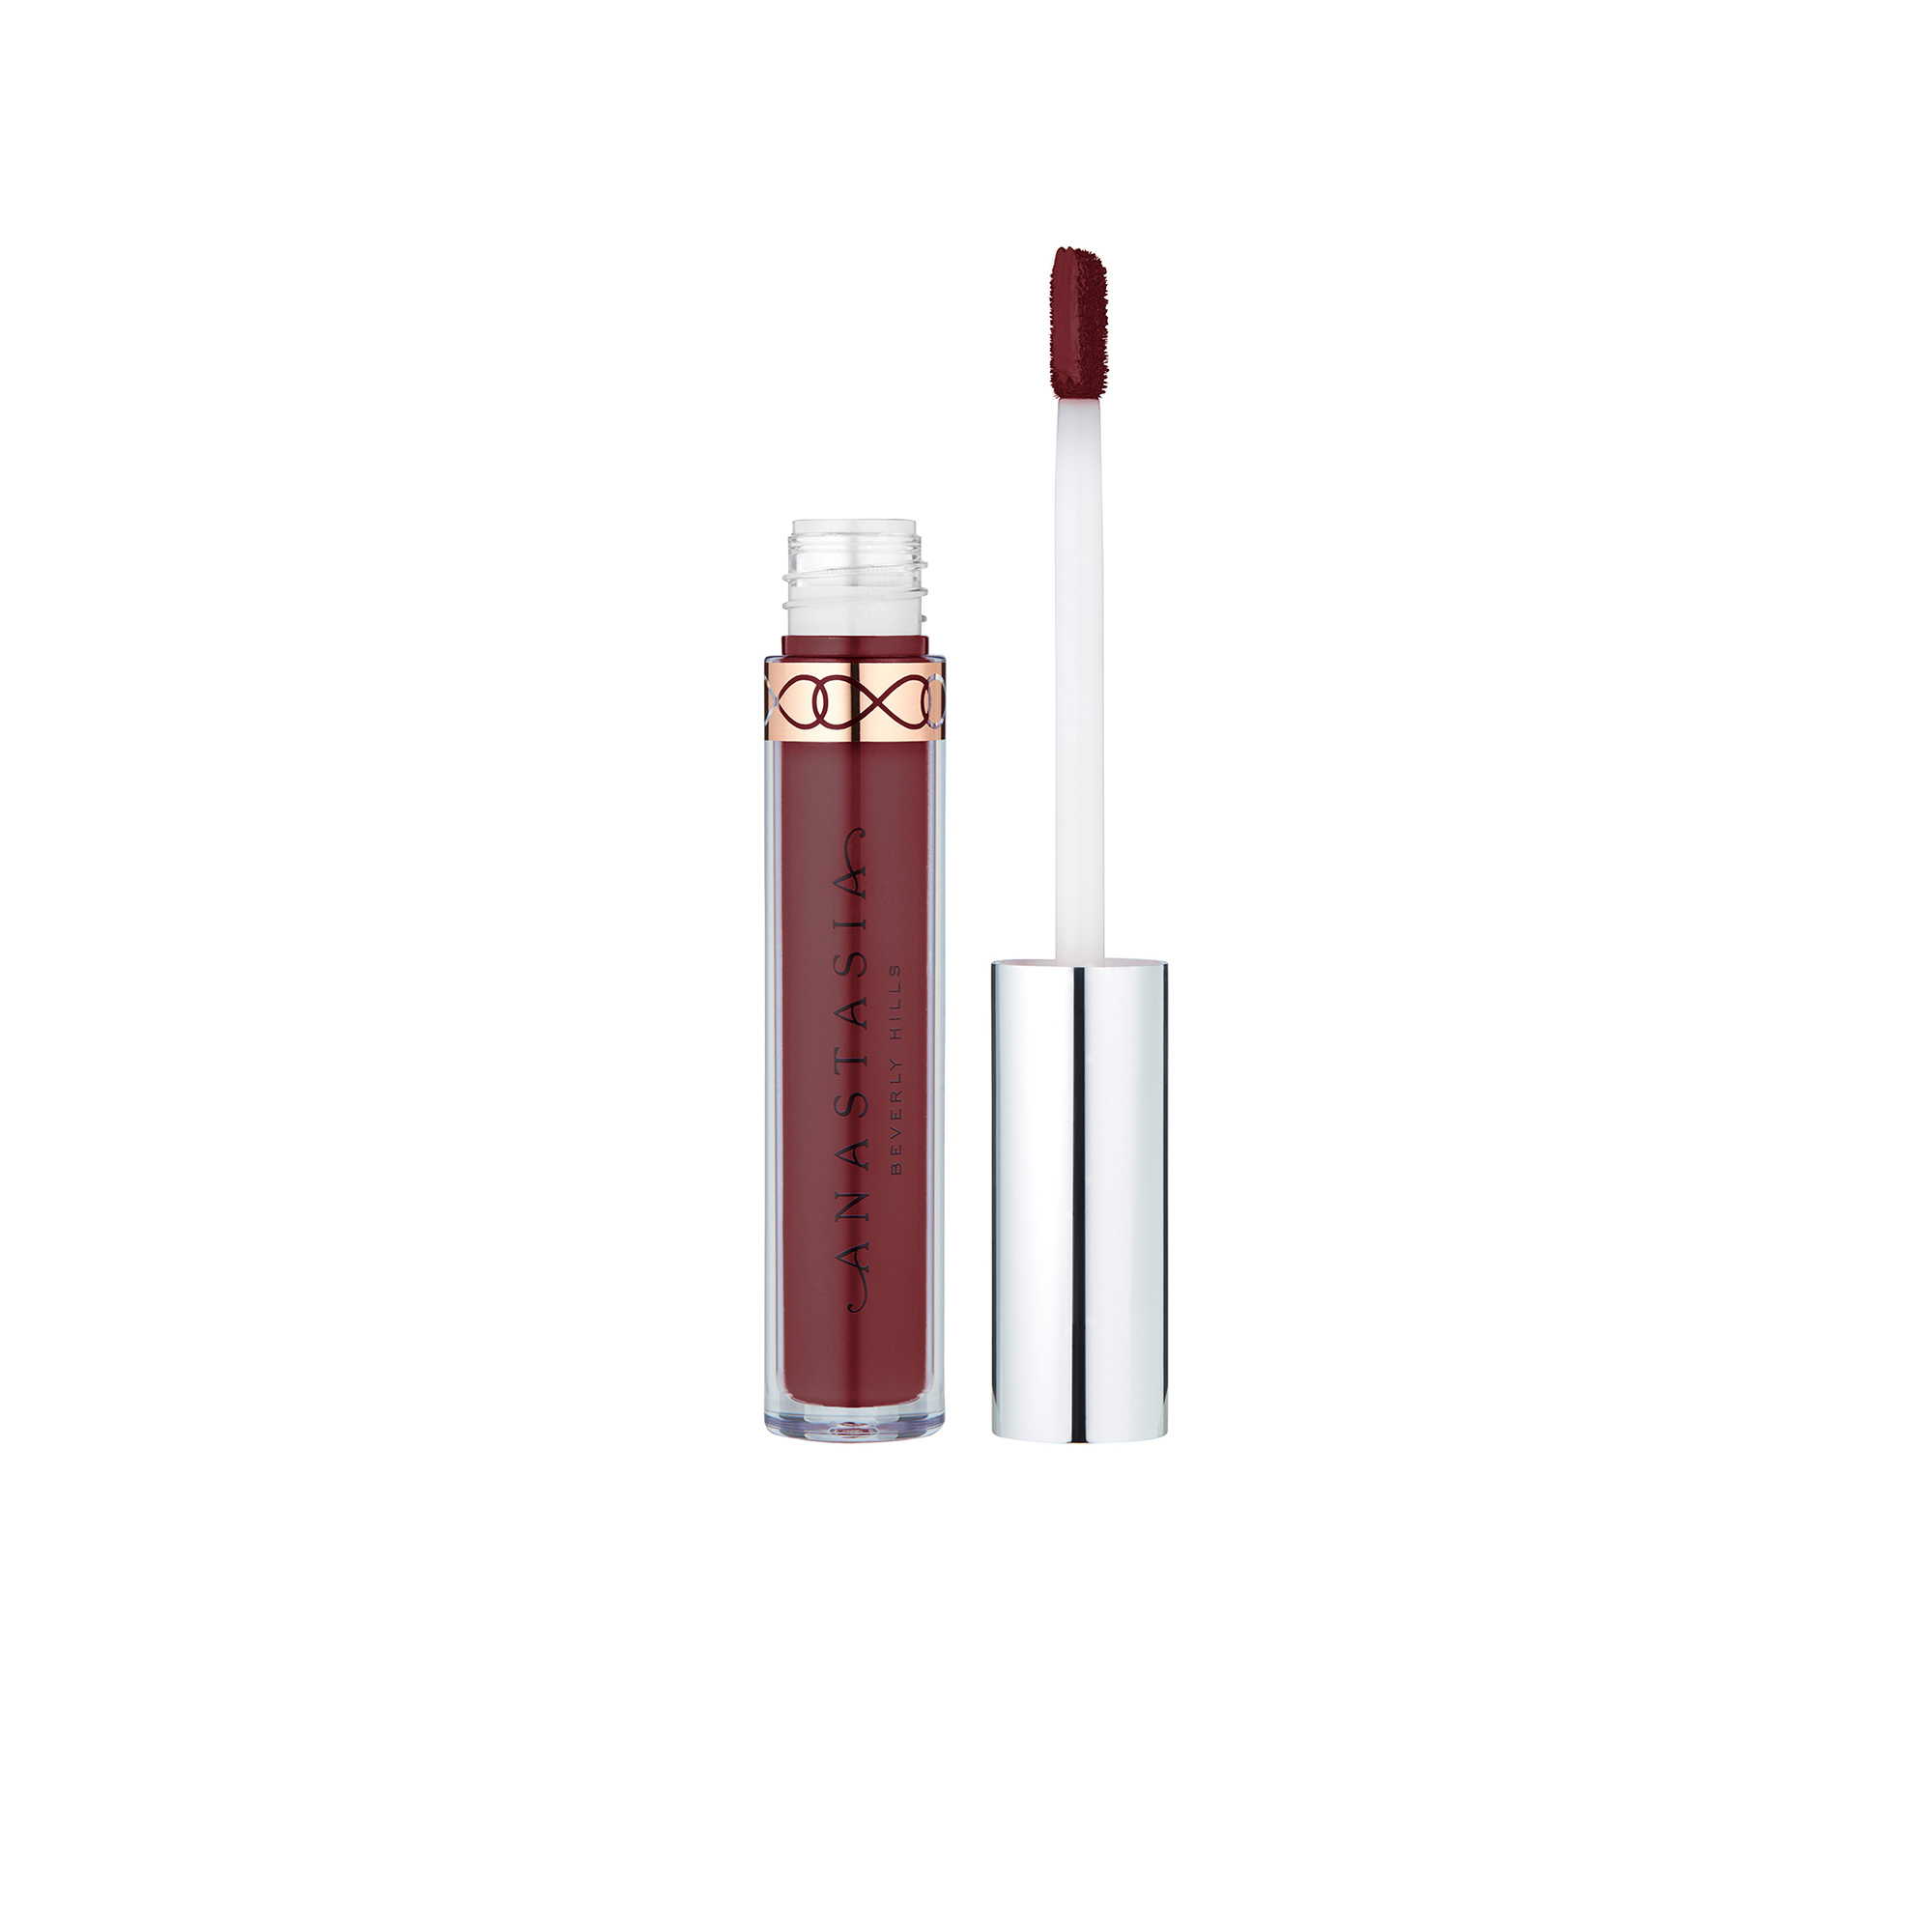 Liquid Lipstick Long Wearing Matte Formula